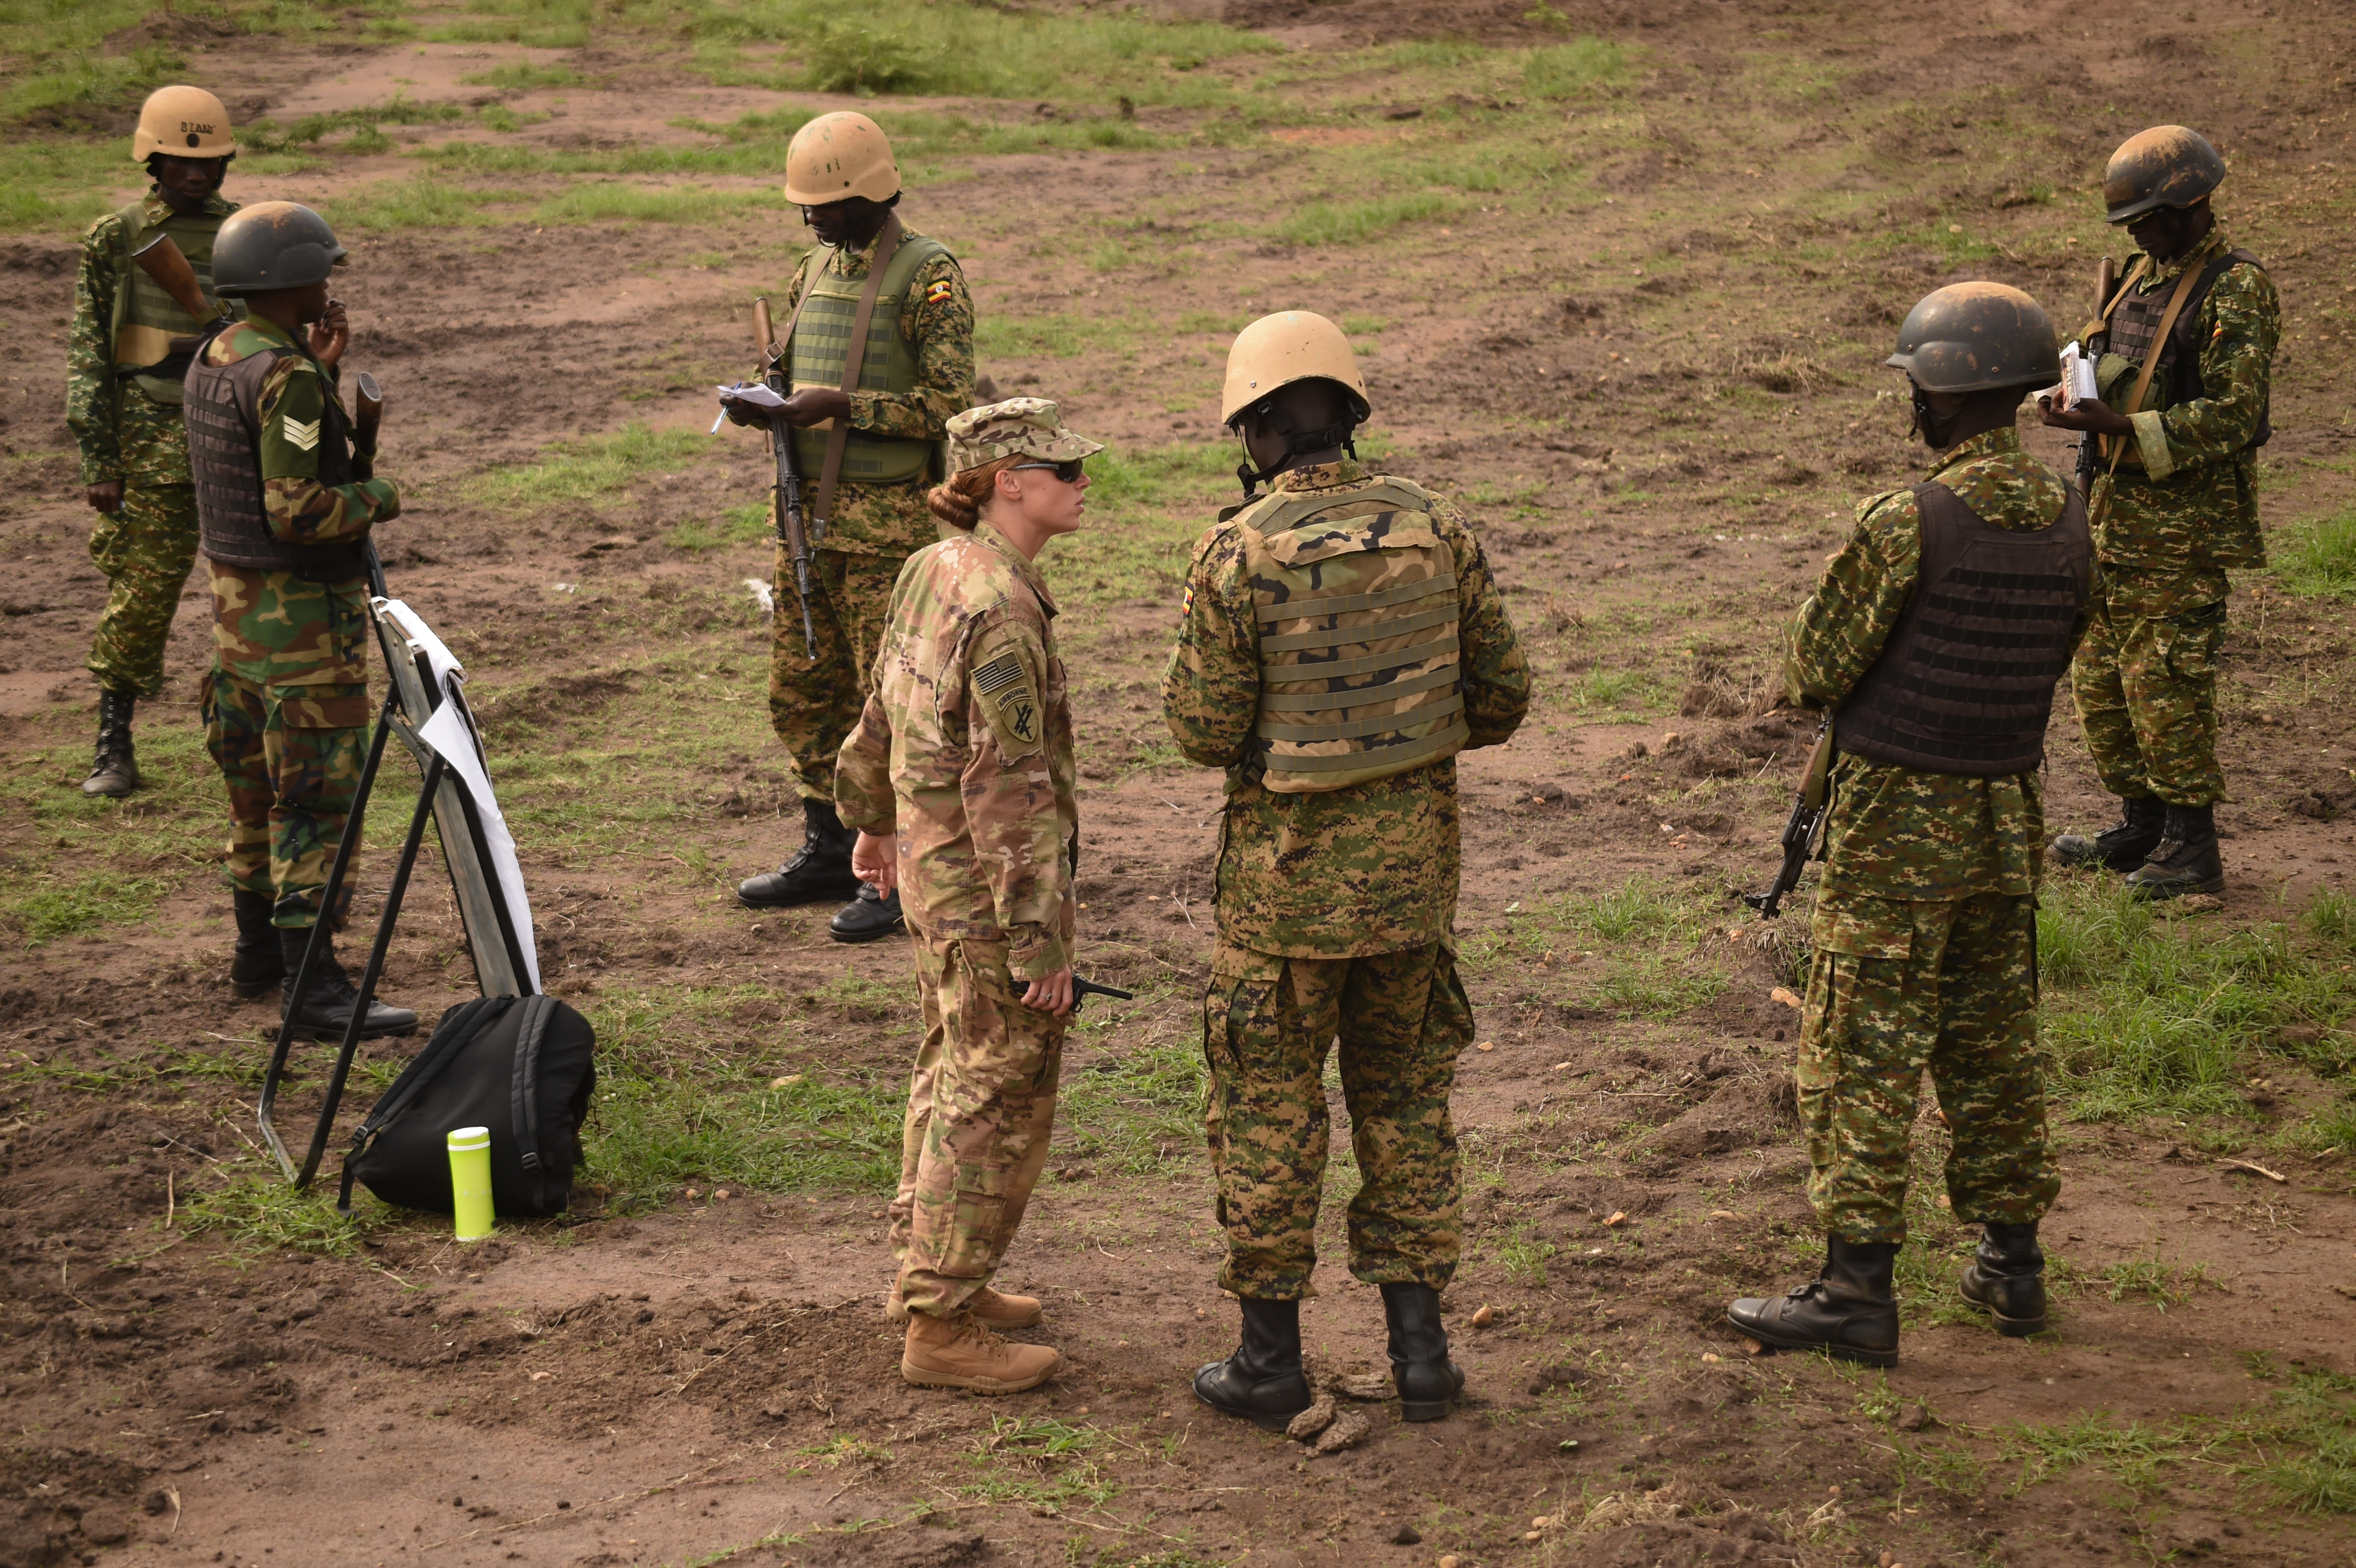 U.S. Army Sgt. Sarah DeArcy with Combined Joint Task Force-Horn of Africa's (CJTF-HOA) 411th Civil Affairs Battalion, listens to a nine-line medical evacuation request from a Uganda People's Defense Force (UPDF) soldier assigned to Ugandan Battle Group 22, during a medical exercise at Camp Singo, Uganda, March 3, 2017. During a 9 Line Medevac, the soldier reports details including the patient's location, medical condition and extraction site markers. CJTF-HOA members supplemented the training as the UPDF instructors become self-sufficient in their predeployment preparation. (U.S. Air National Guard photo by Staff Sgt. Penny Snoozy)